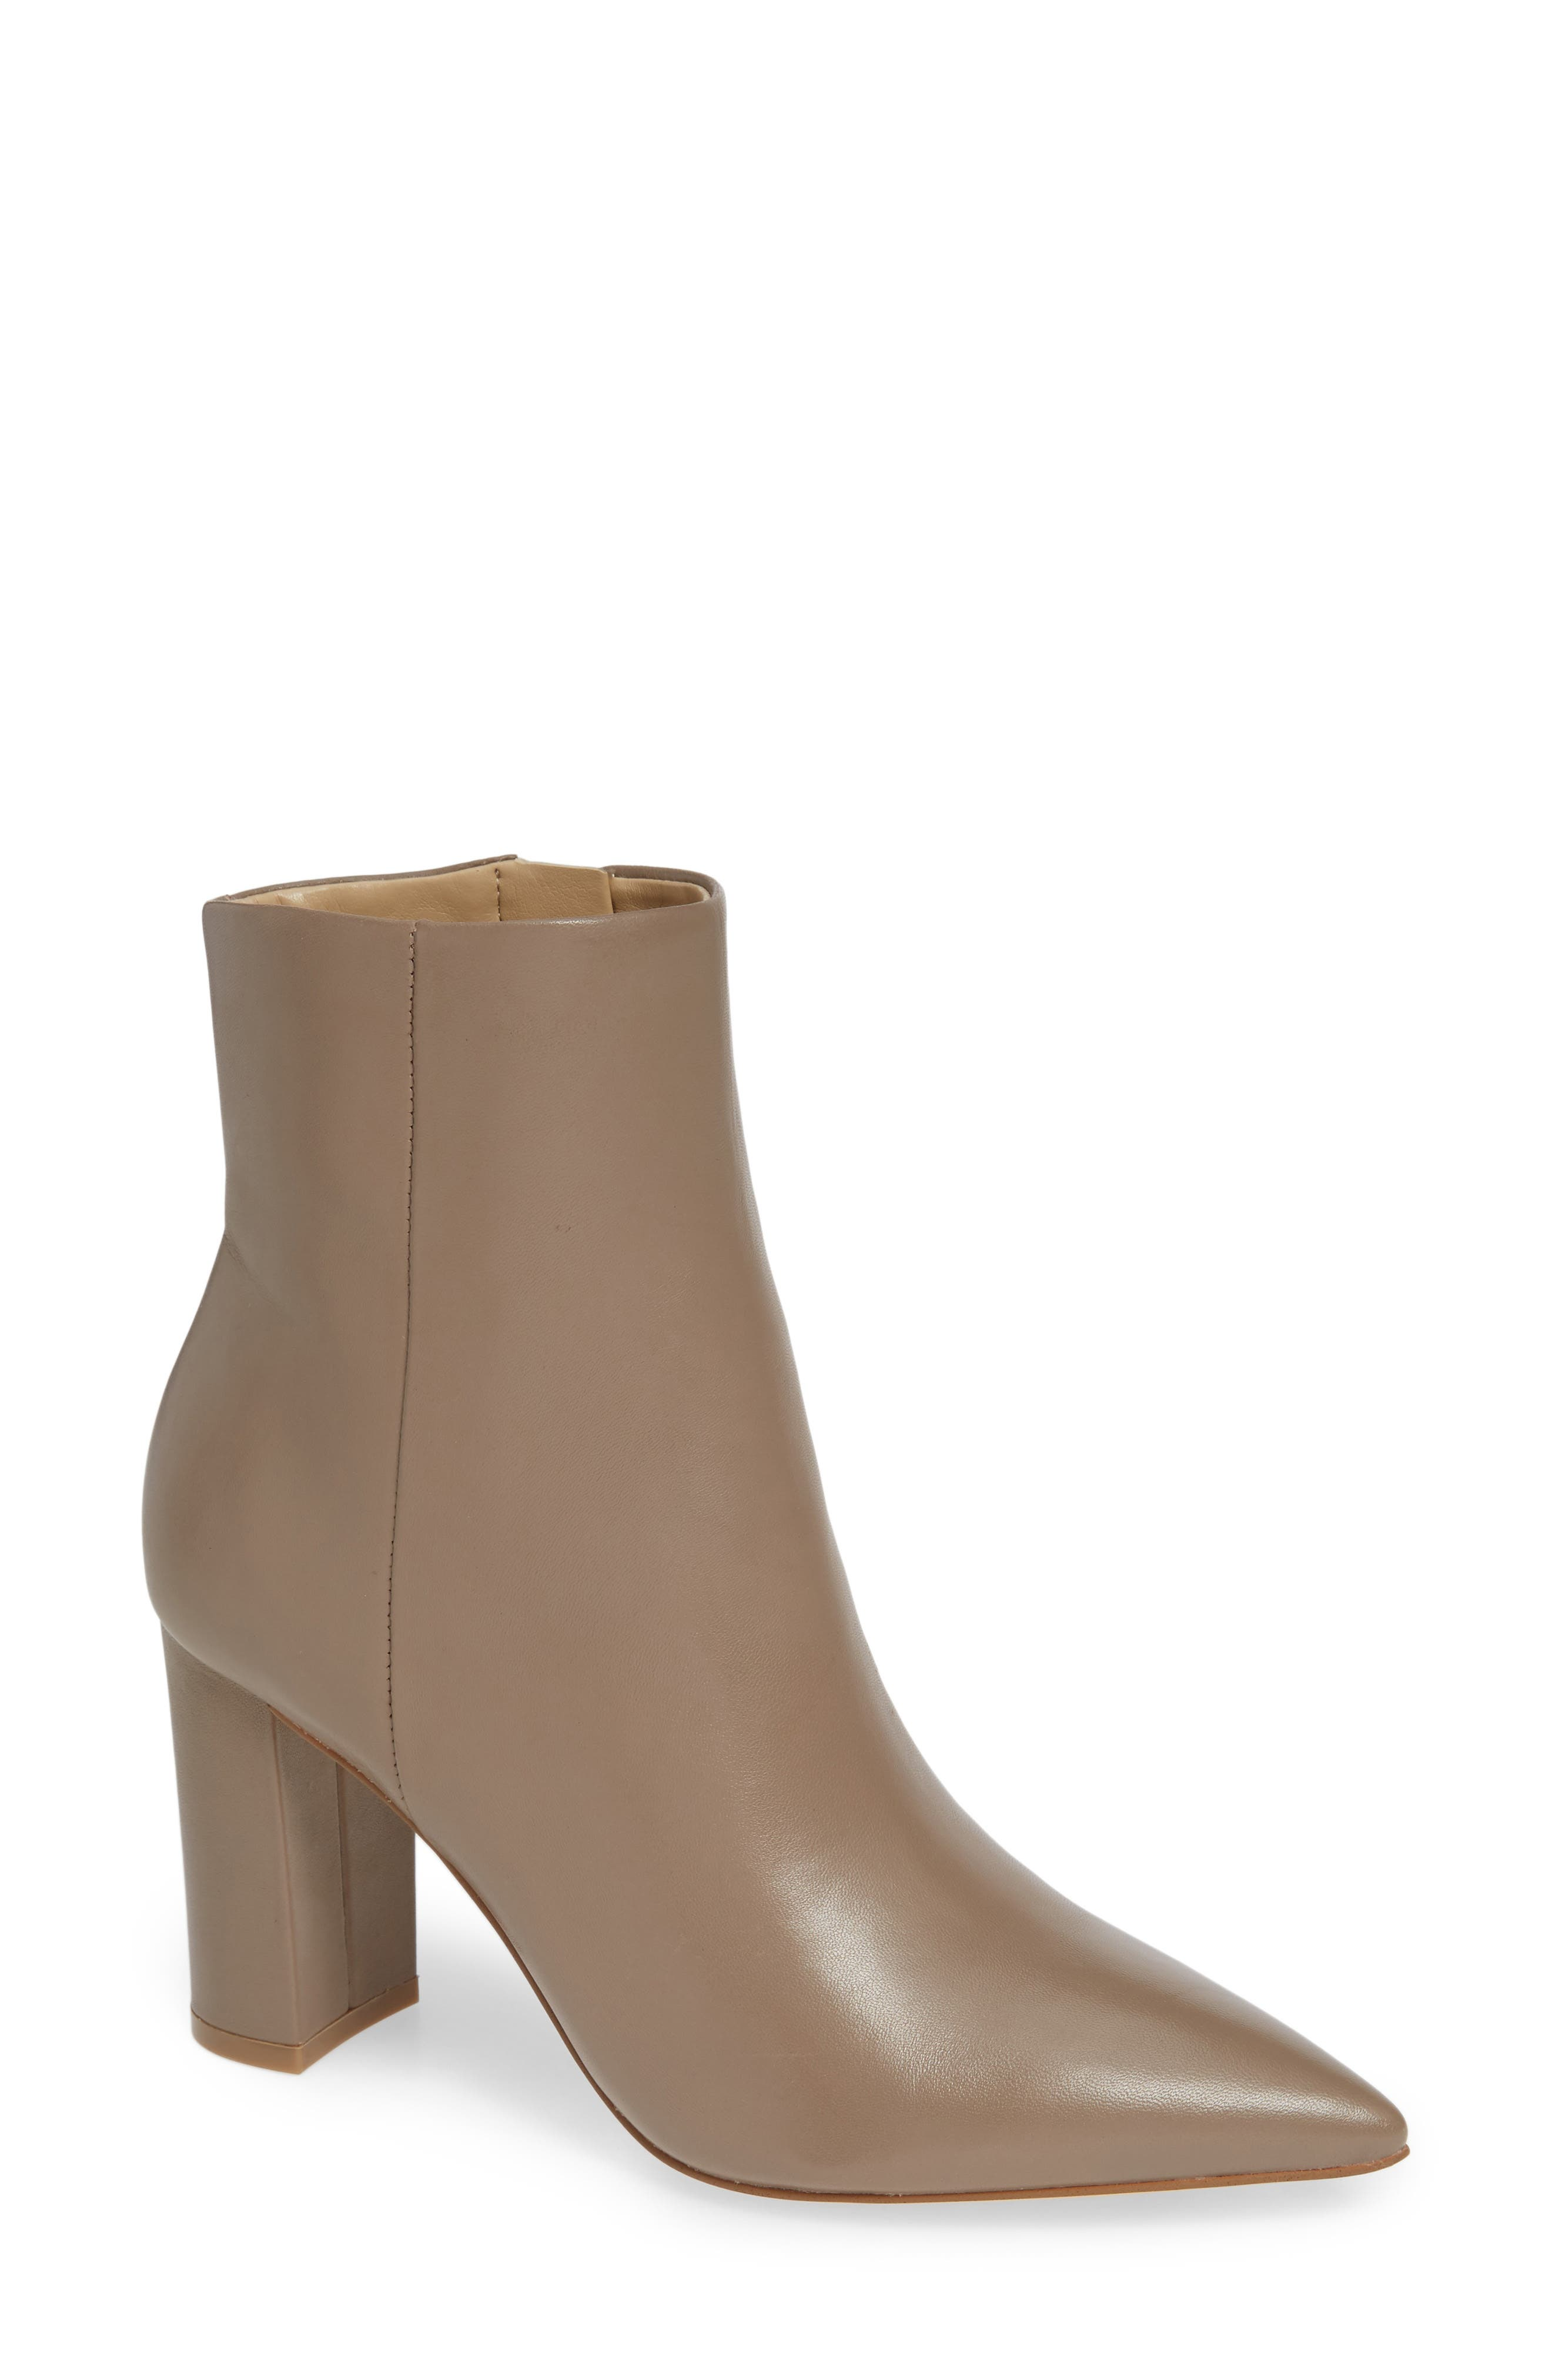 MARC FISHER LTD,                              Ulani Pointy Toe Bootie,                             Main thumbnail 1, color,                             TAUPE LEATHER